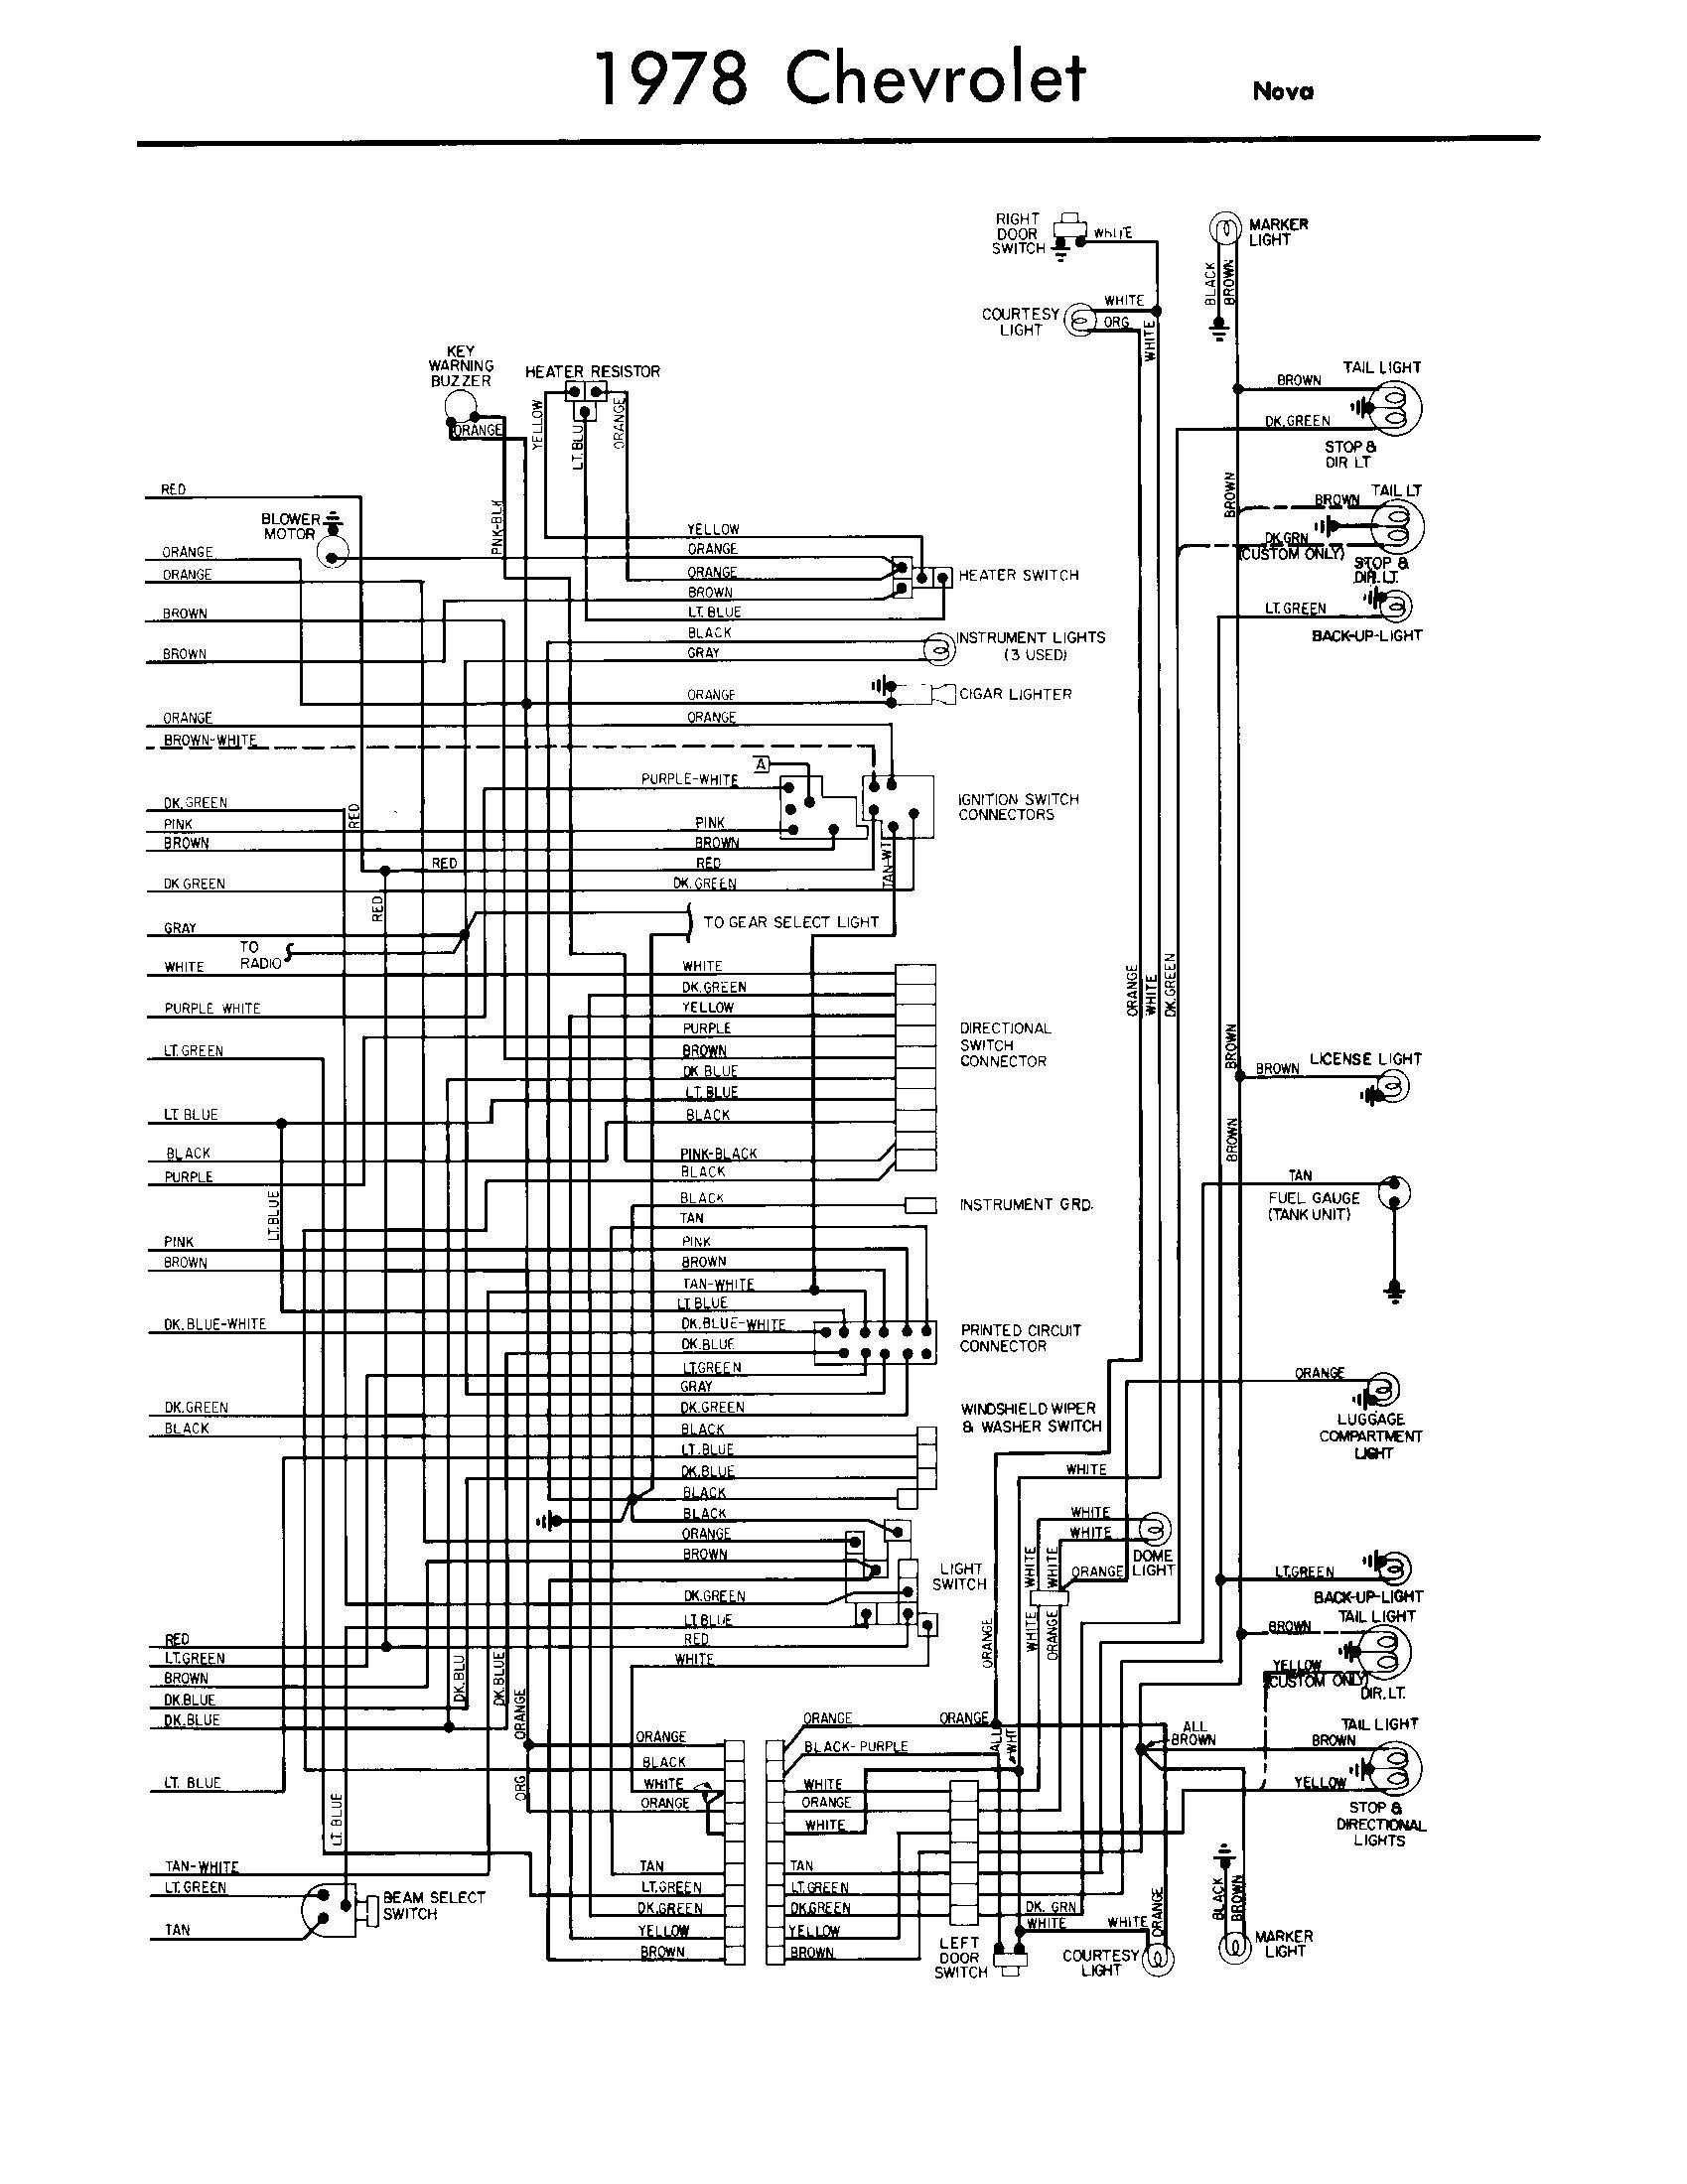 78 gmc wiring diagram wiring library1979 gmc dash wiring schematic electrical wiring diagrams \\u2022 1989 s10 wiring diagram 78 gmc wiring diagram